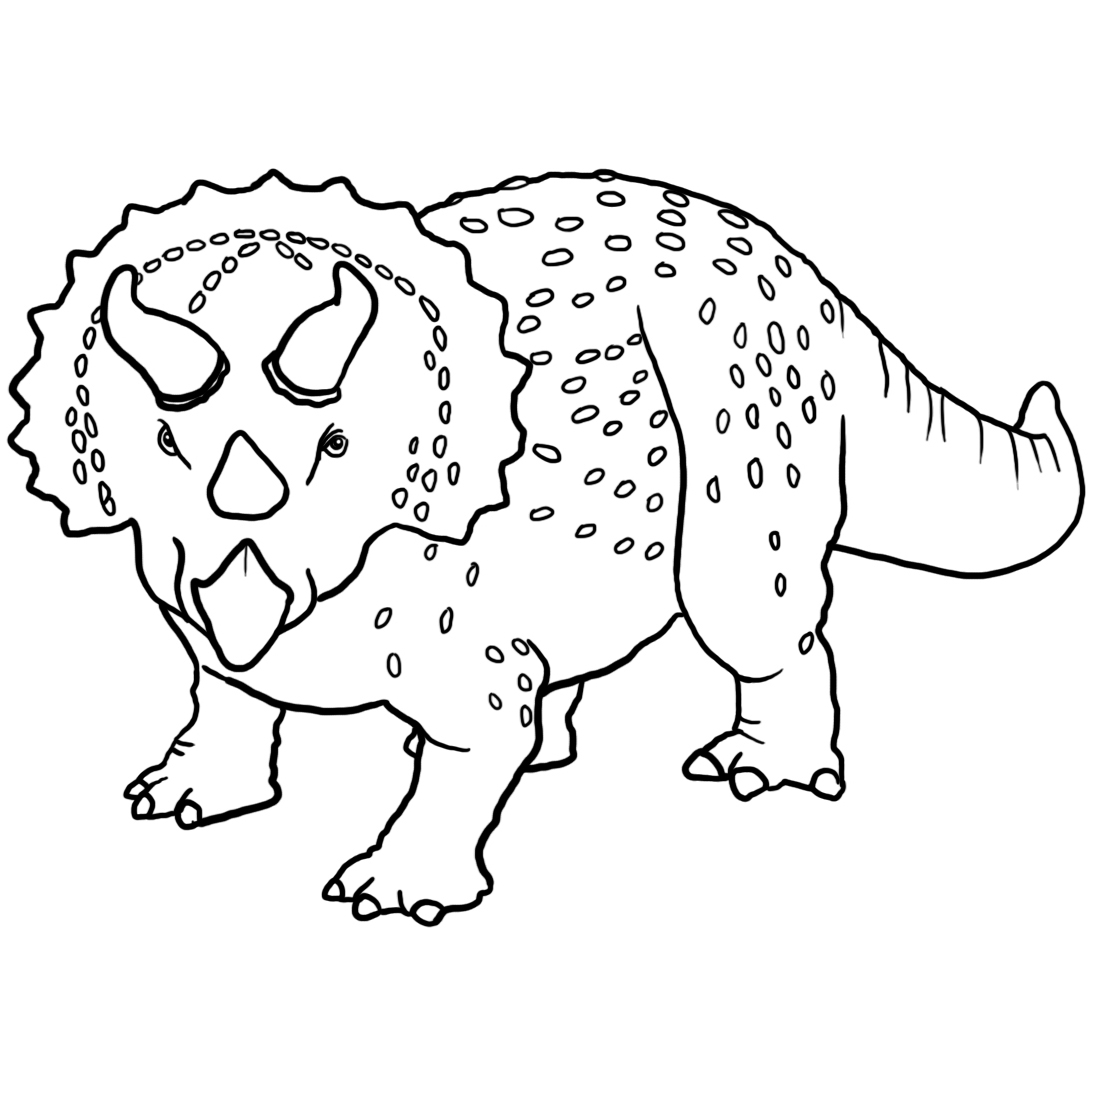 Triceraptor coloring page